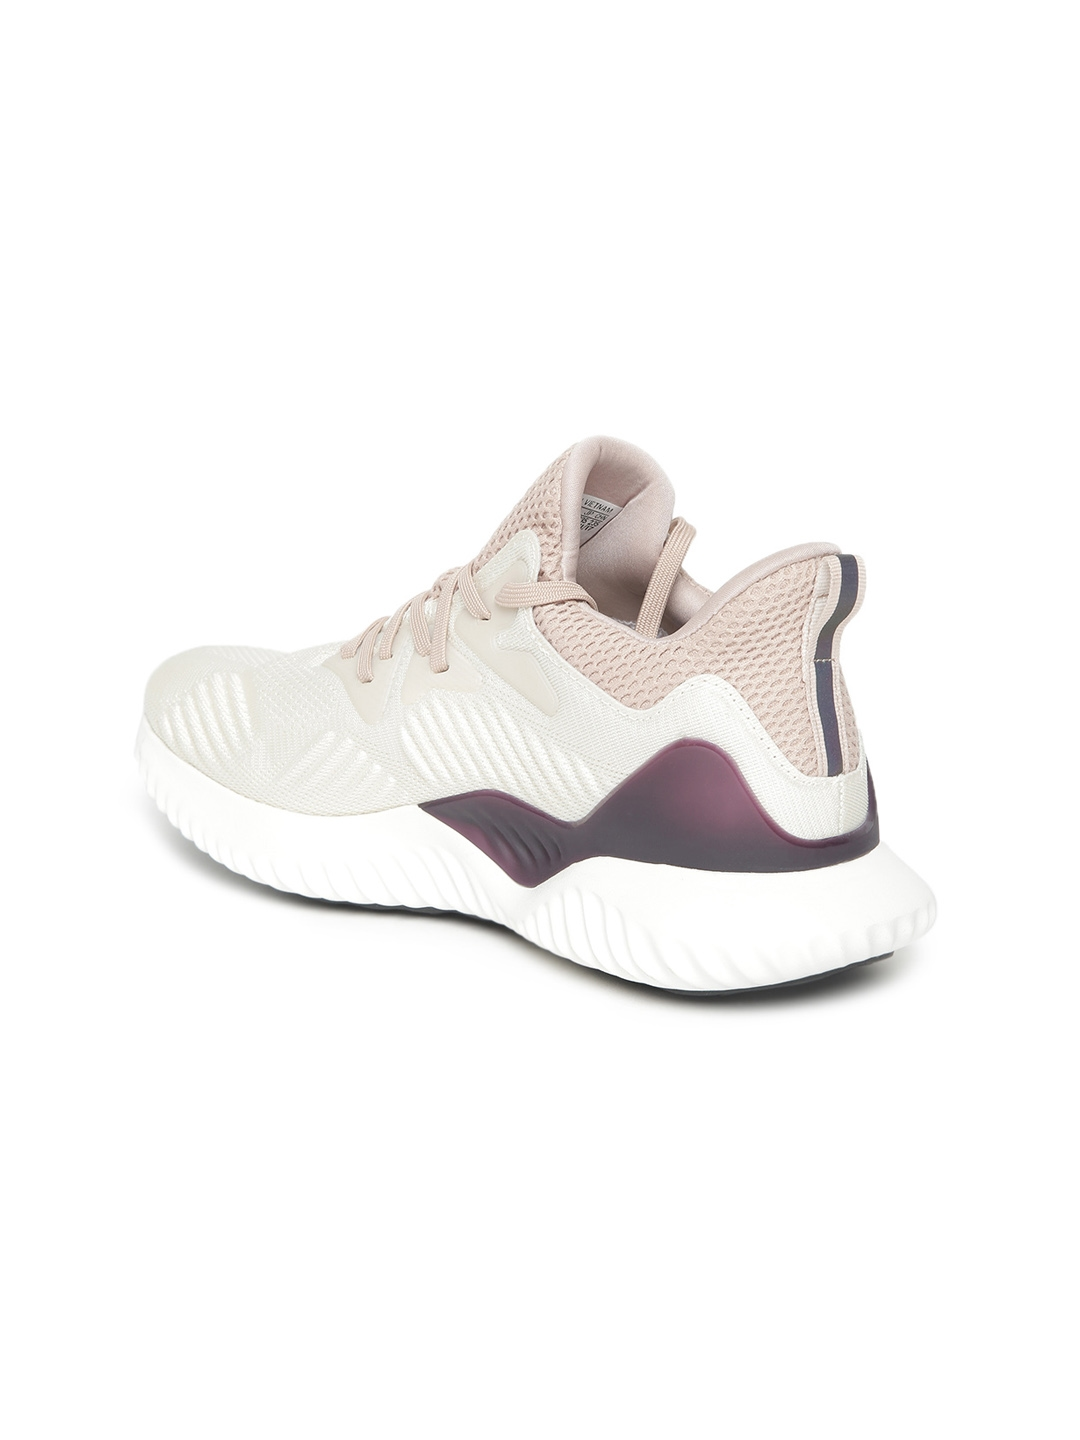 0ed17d206 Buy ADIDAS Women Beige   White ALPHABOUNCE BEYOND W Running Shoes ...